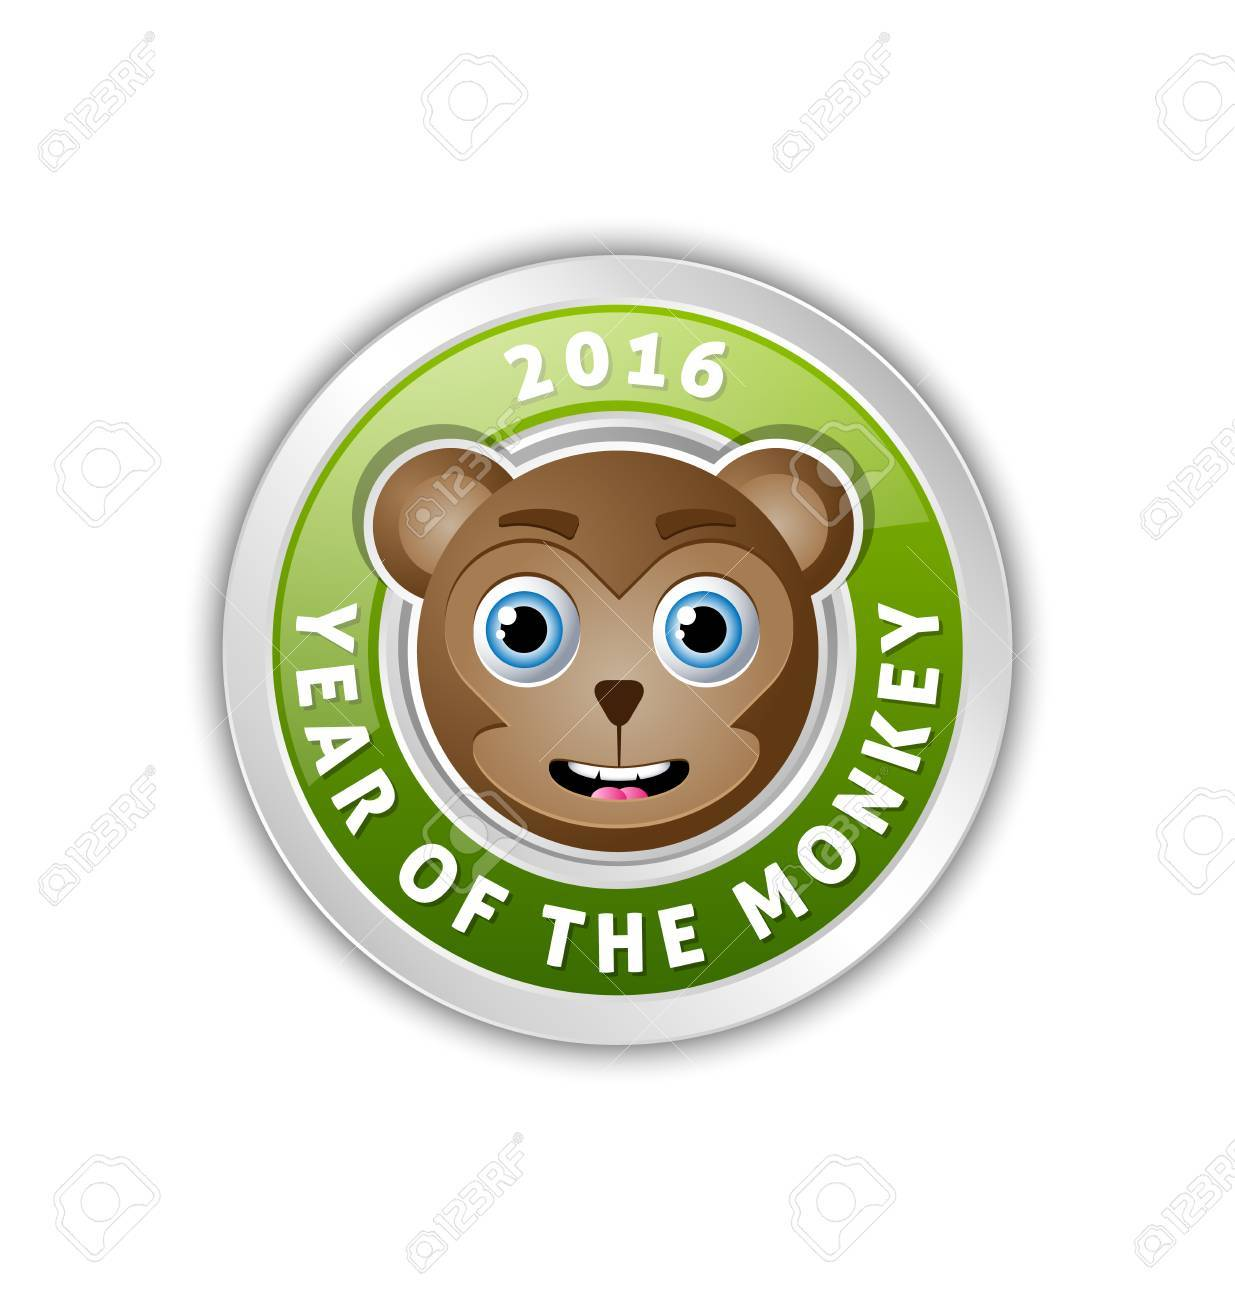 2016 year of the monkey chinese new year animal badge with lettering stock vector 83744411 - Chinese New Year 2016 Animal